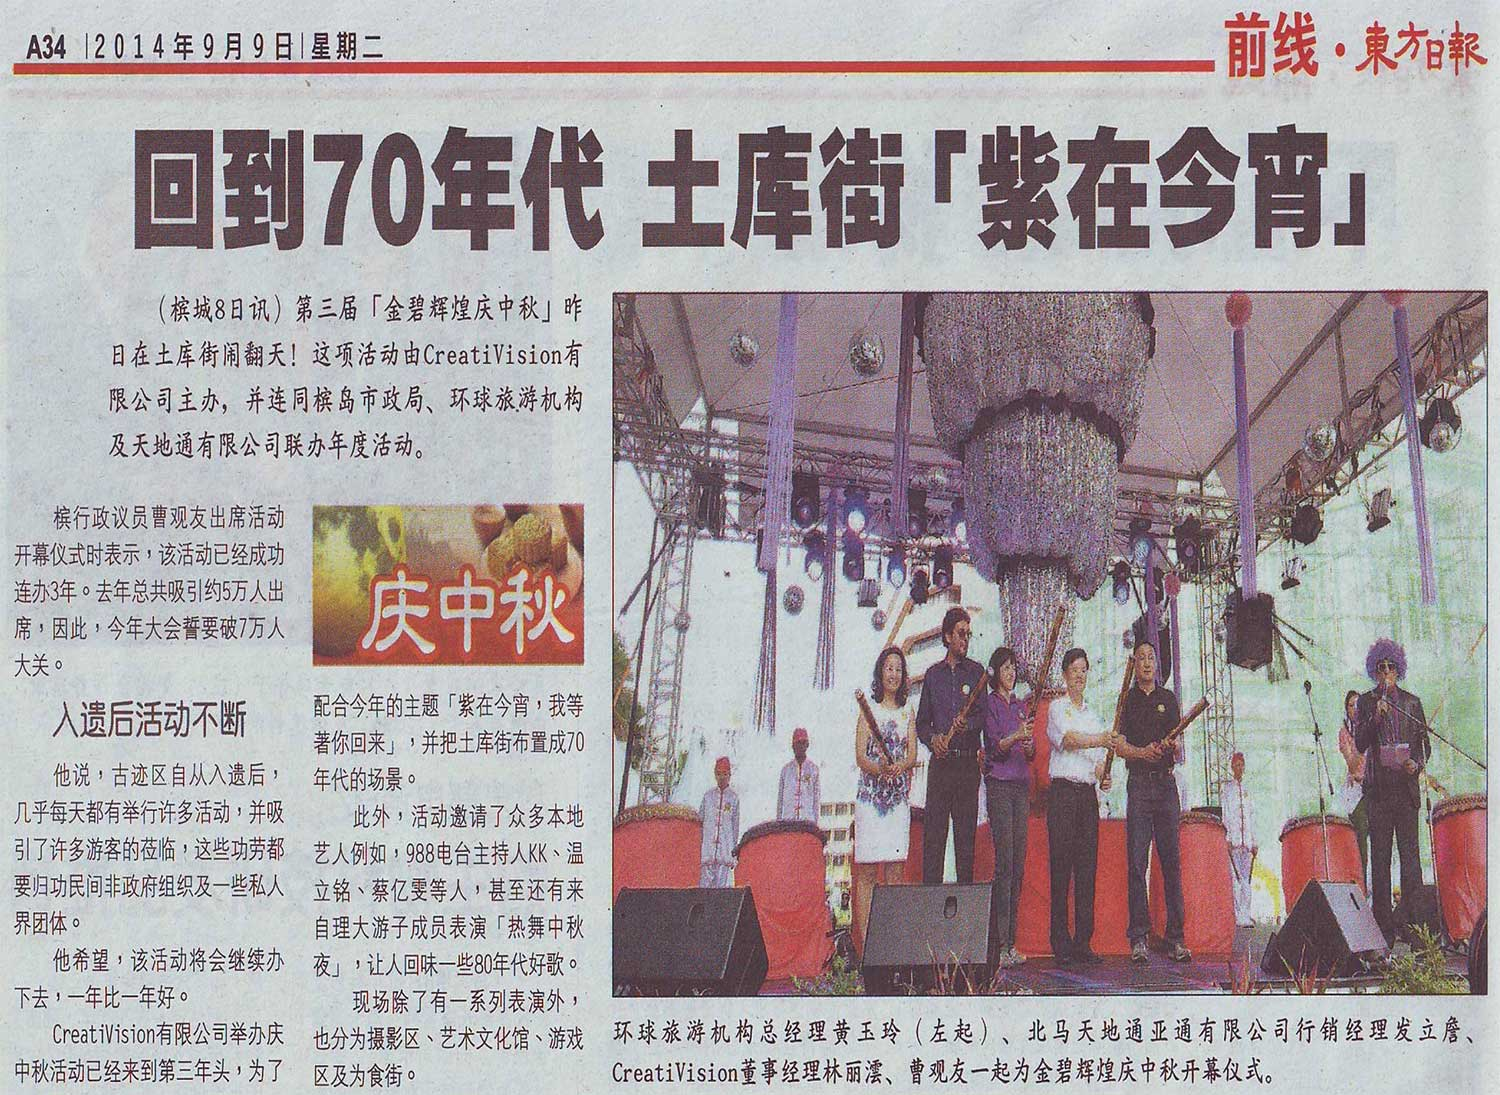 20140909-Oriental-Daily